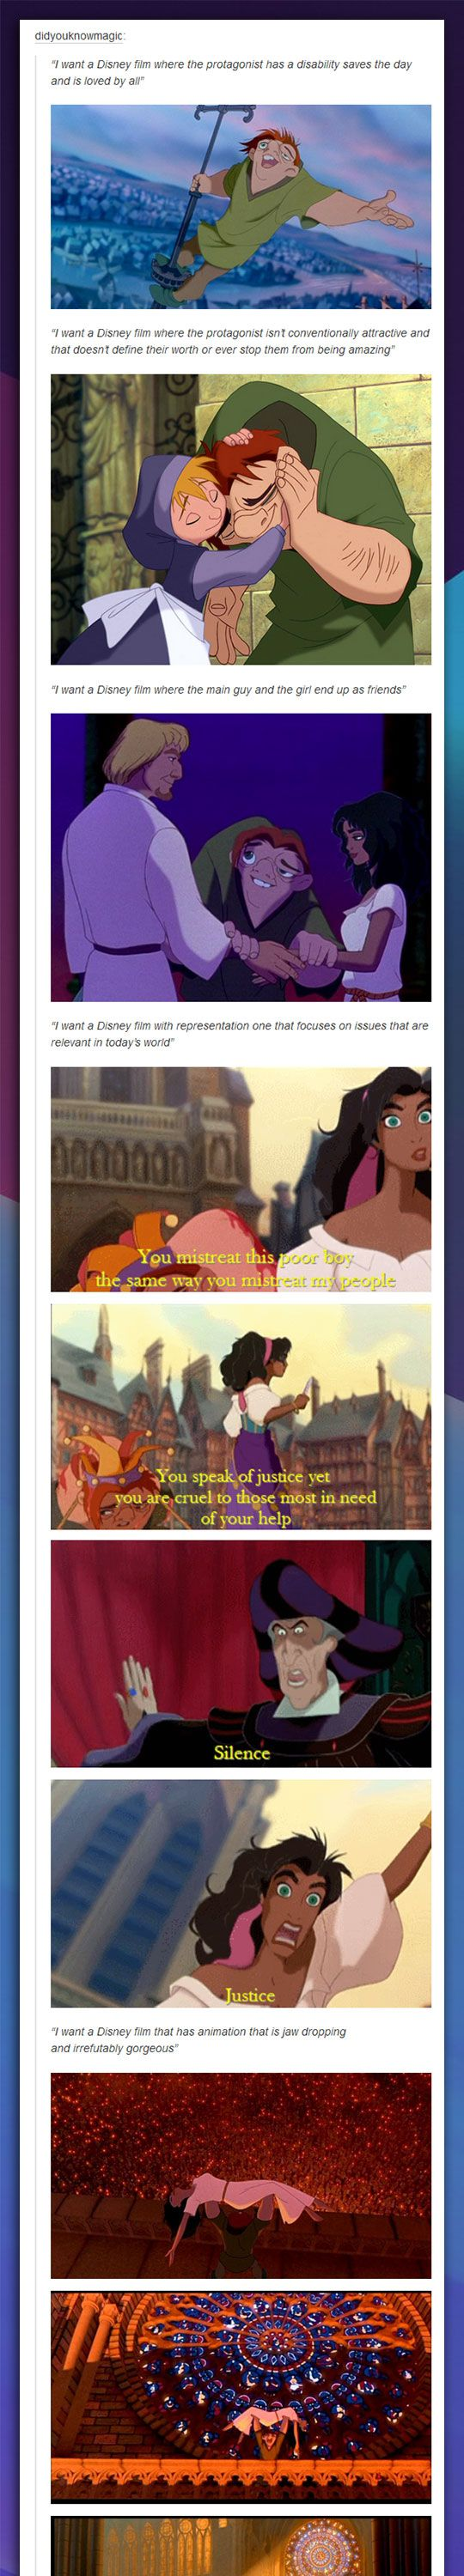 This movie is definitely one of the greatest Disney films ever made, and I think everyone should see this.